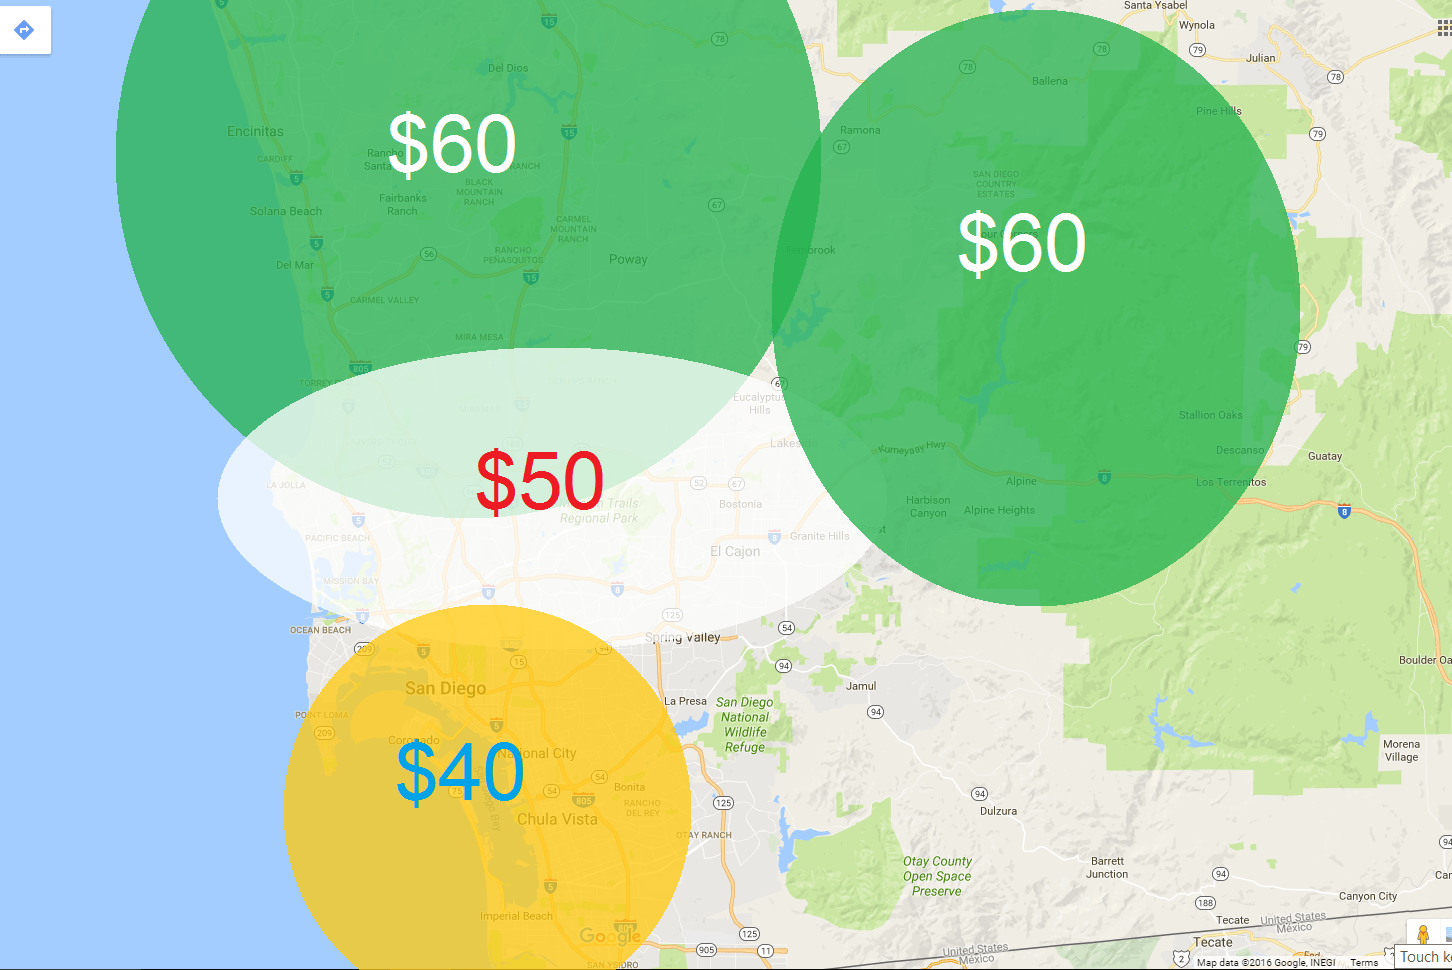 mobile service fees by area - Mobile Services